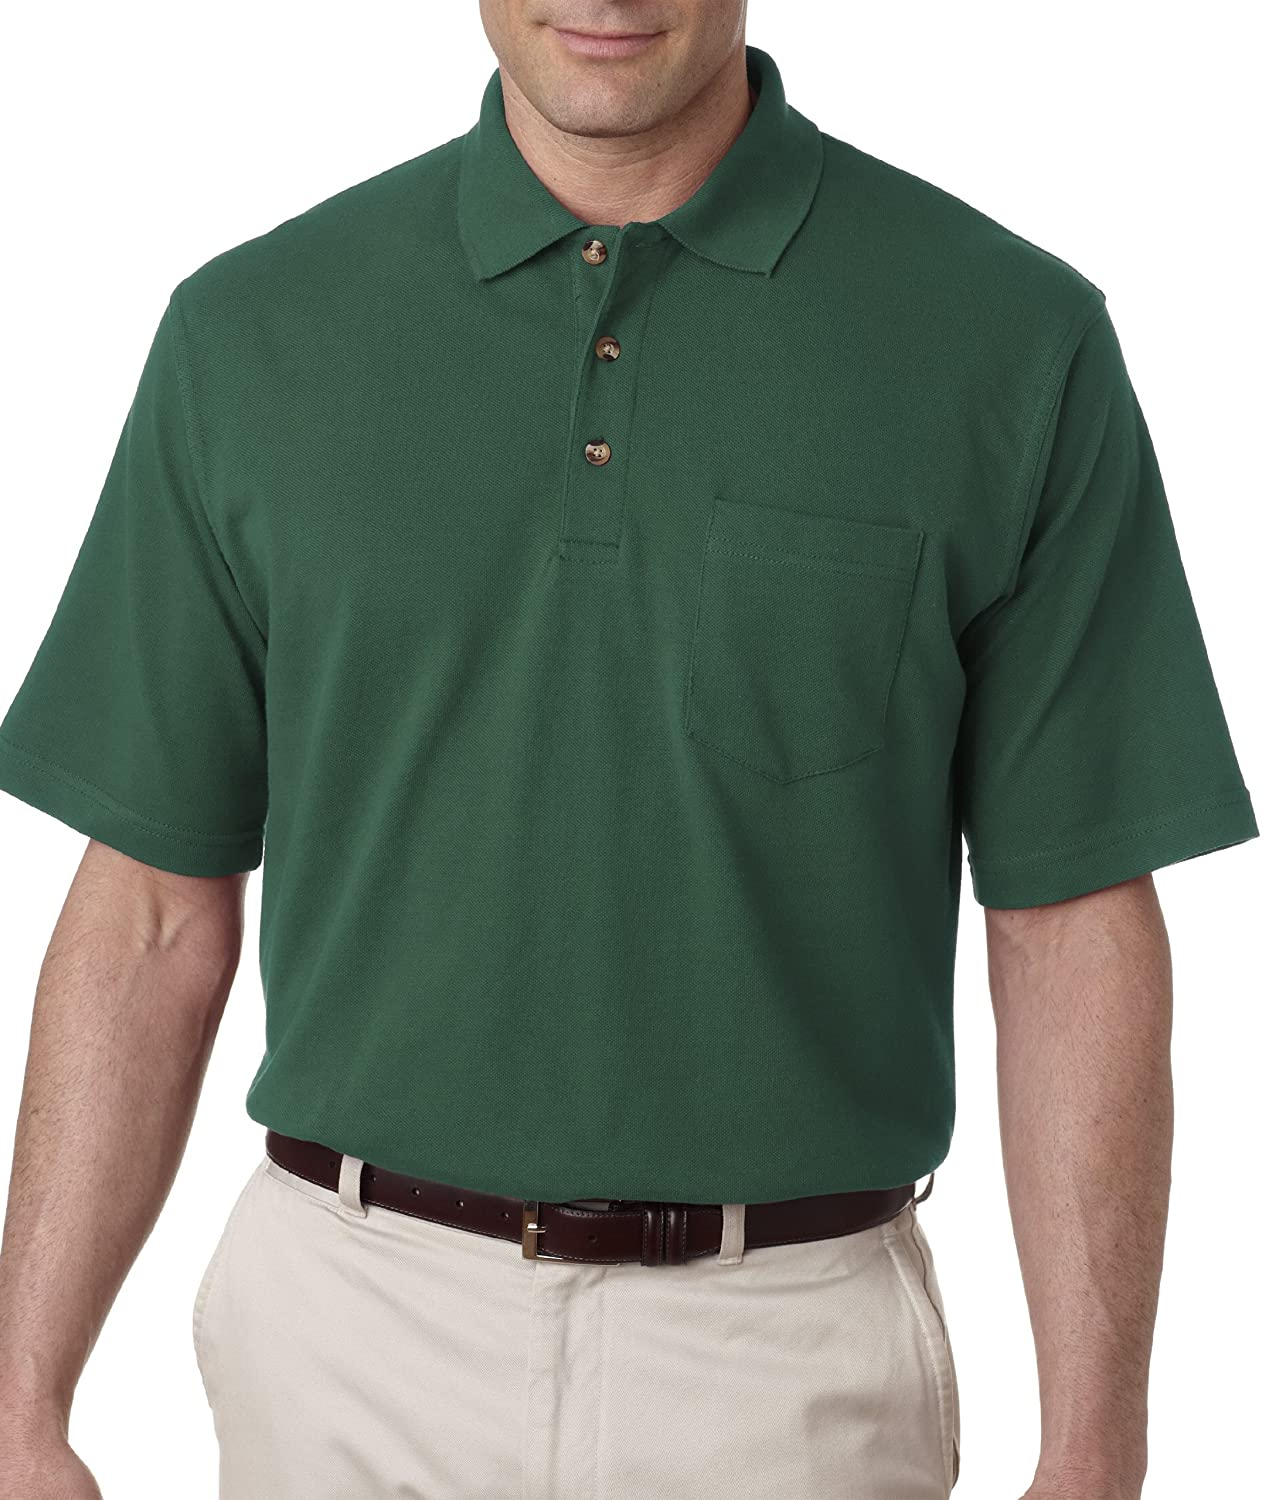 UltraClub Men's Classic Pique Polo Short Sleeve Shirt with Pocket ...